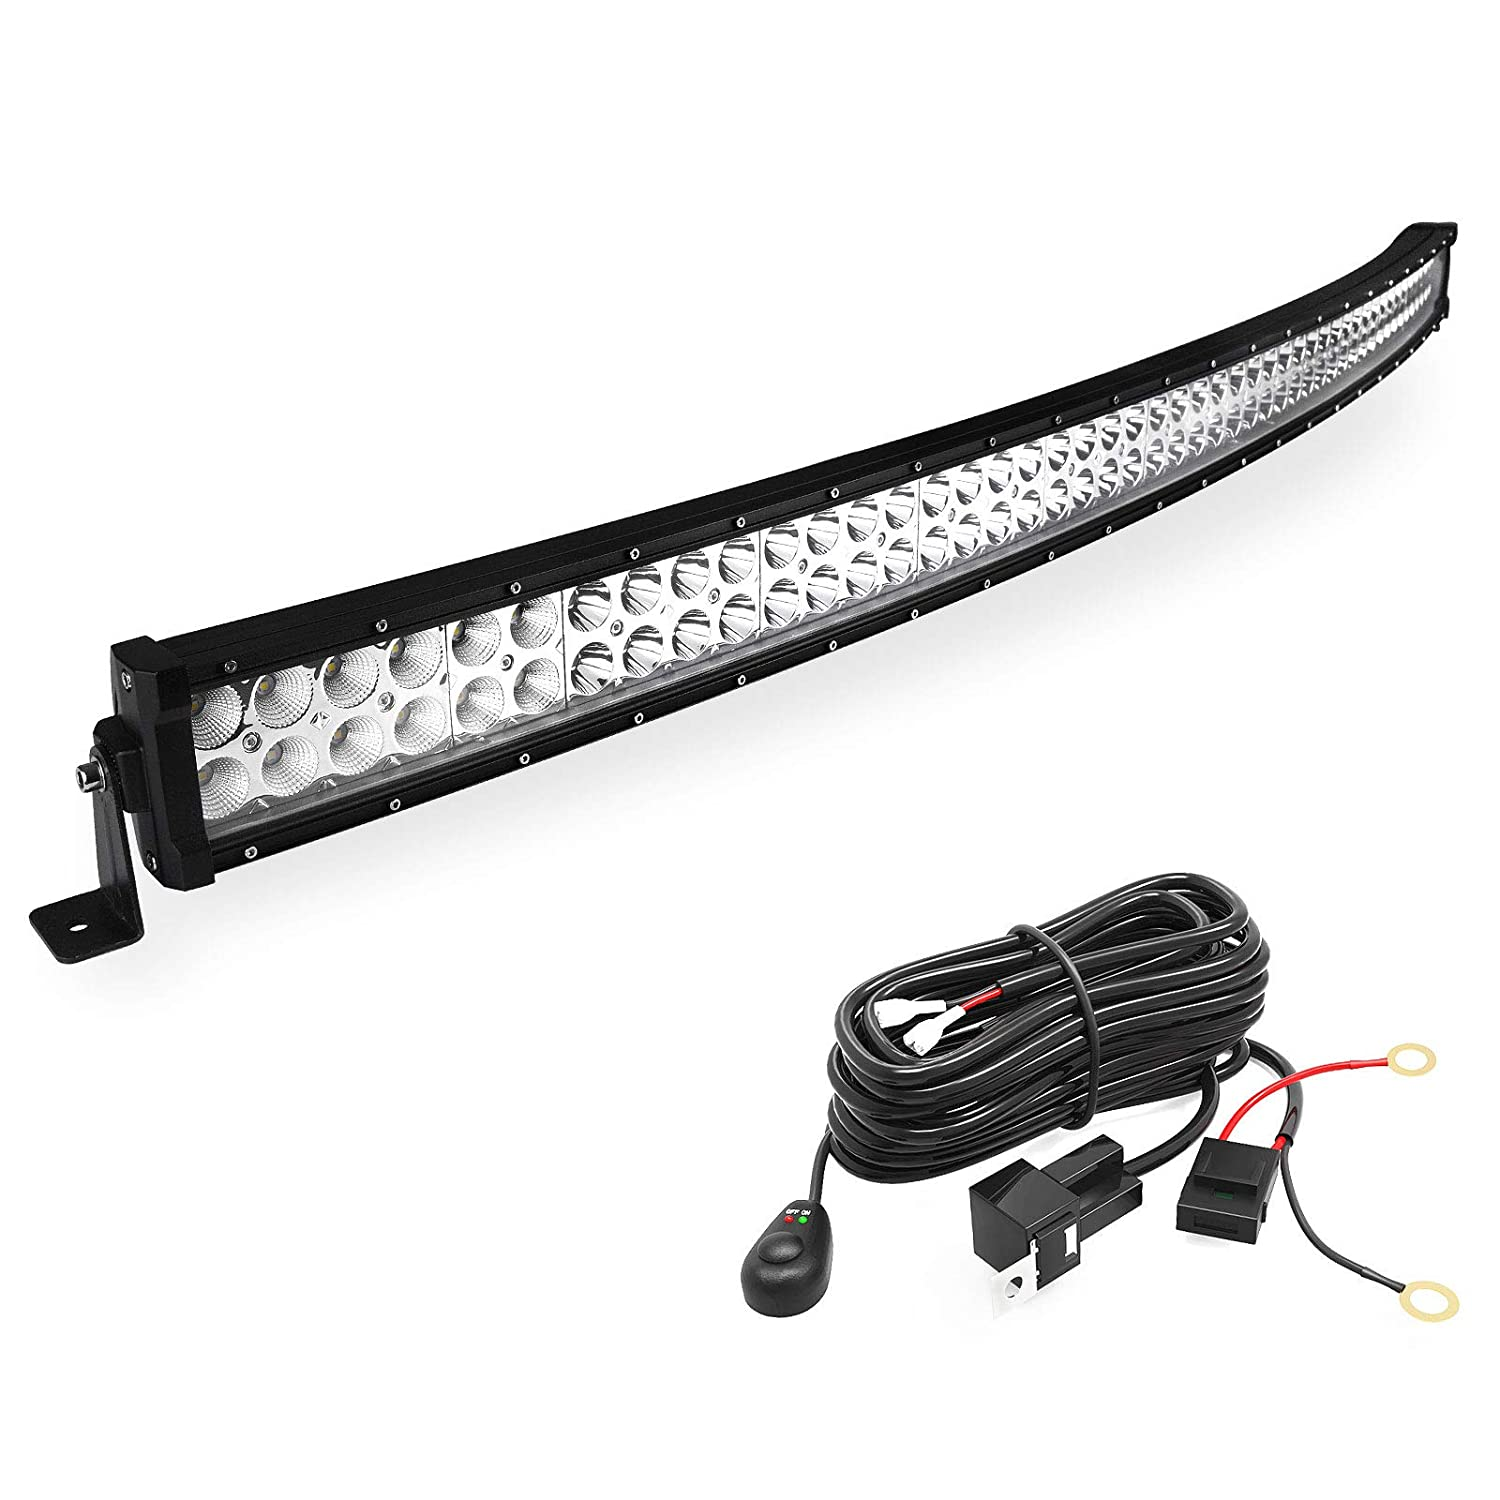 Led Light Bar Yitamotor 50 Inch Curved Spot 1986 Dodge 1500 Pickup Wiring Flood Combo Offroad With Harness For Ford Gmc Truck Jeep Cherokee Ram